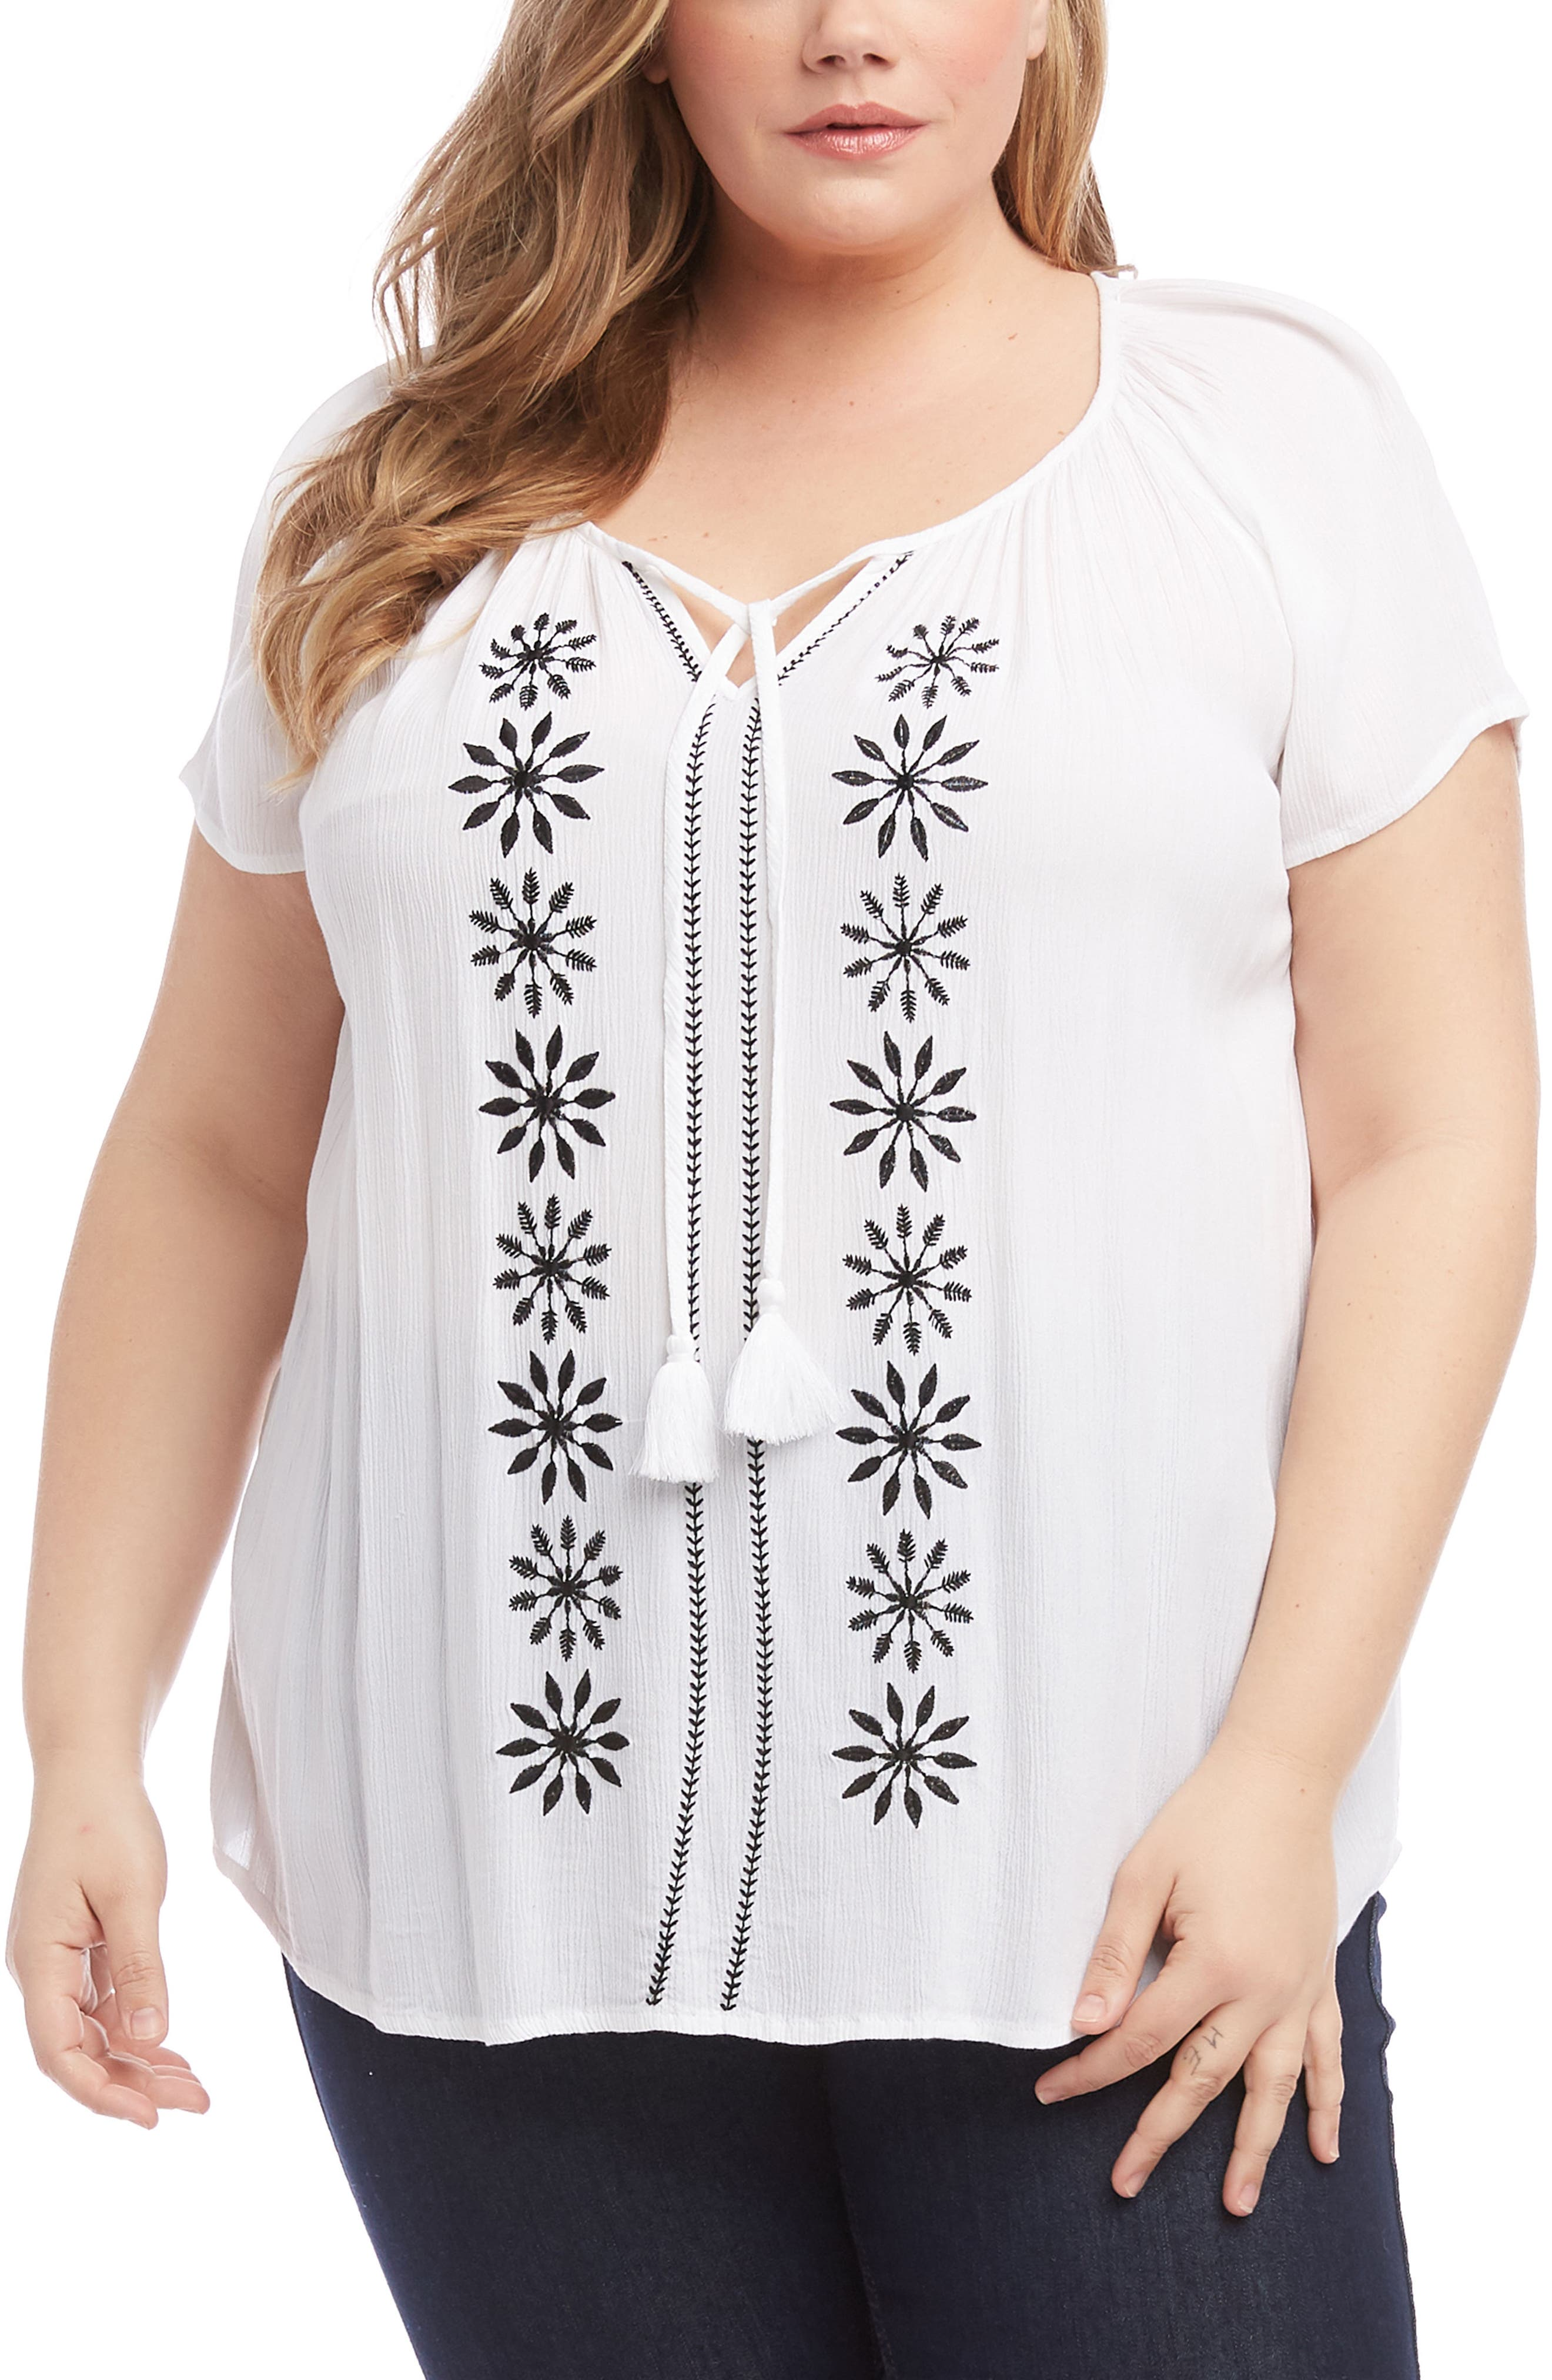 KAREN KANE, Embroidered Peasant Top, Main thumbnail 1, color, OFF WHITE WITH BLACK